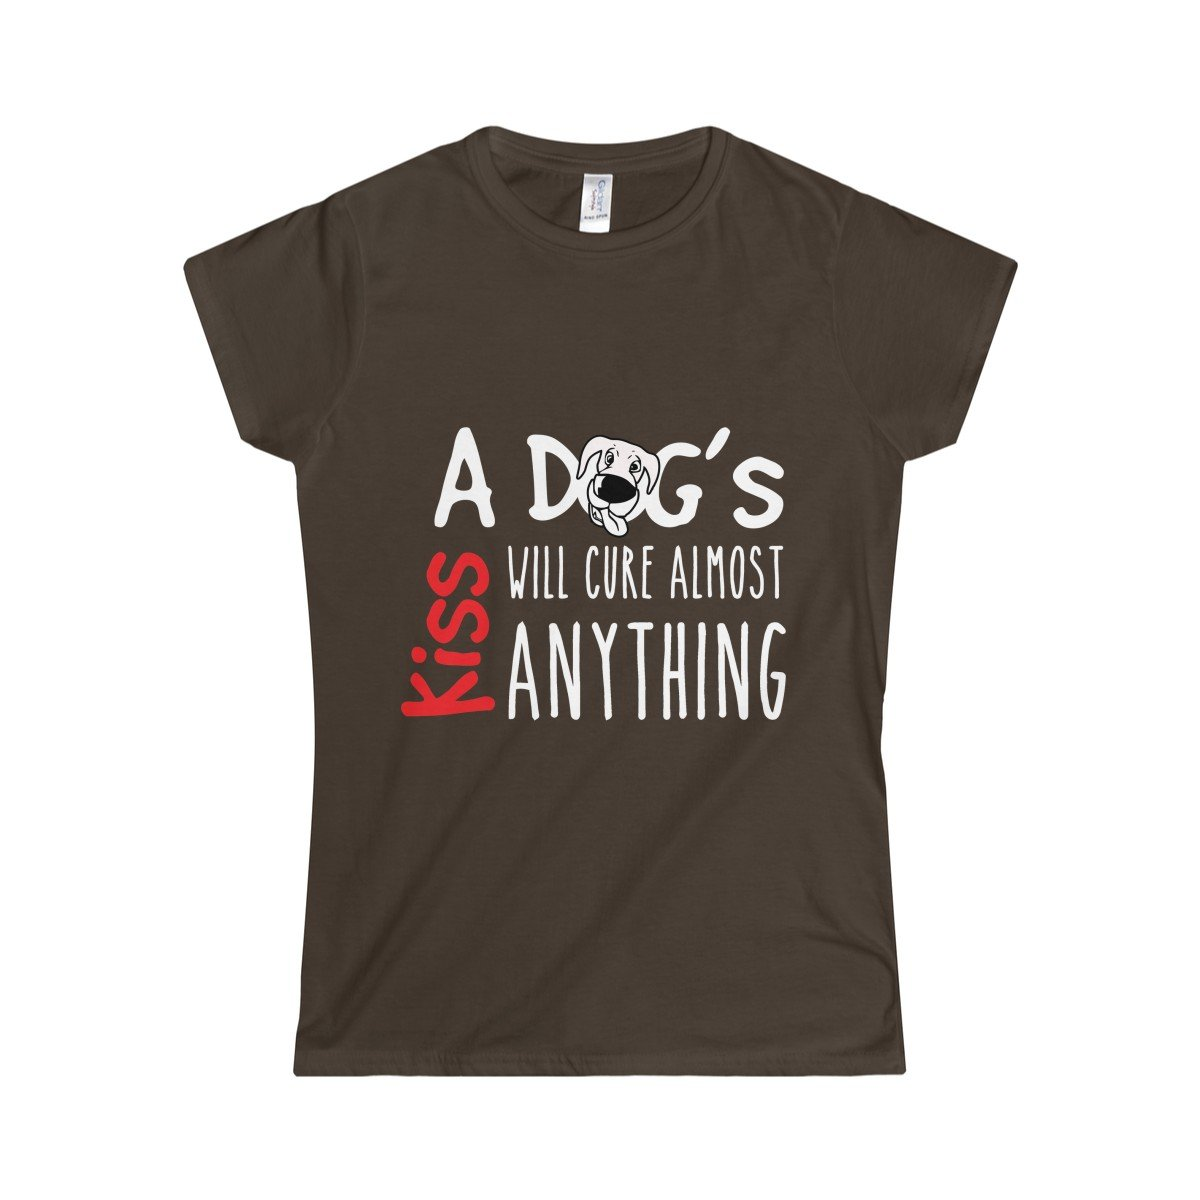 Funny Women's Brown t-shirt with reading A Dog's Kiss Will Cure Almoast Anything